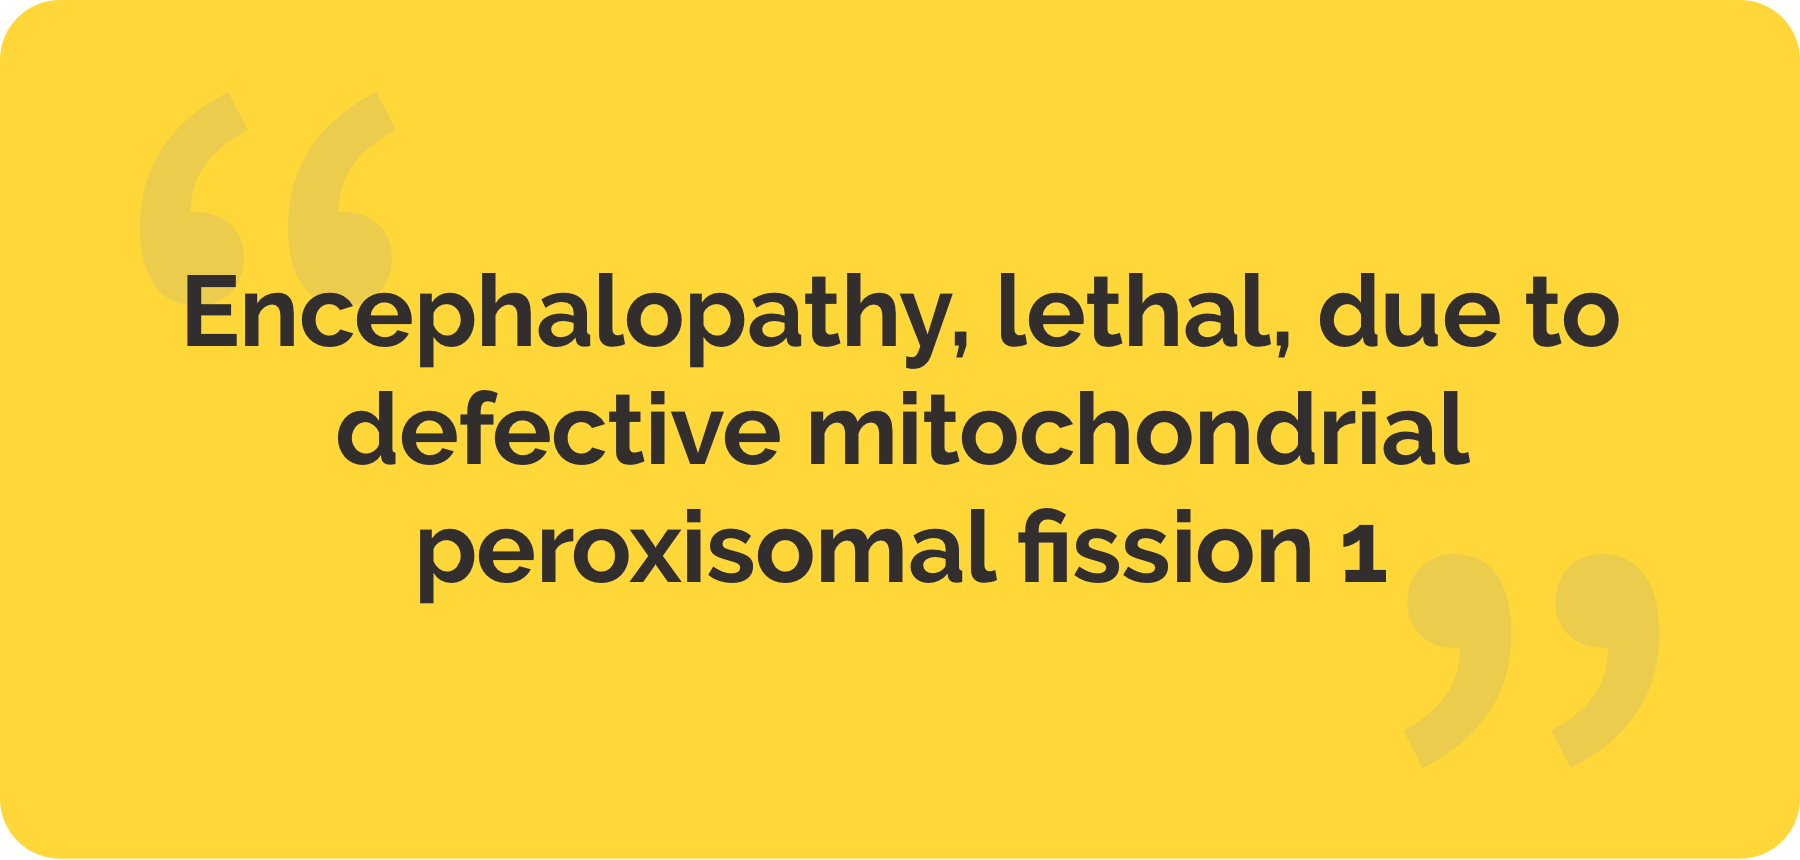 The cover of 'Story of a girl diagnosed with Encephalopathy, lethal, due to defective mitochondrial peroxisomal fission 1'